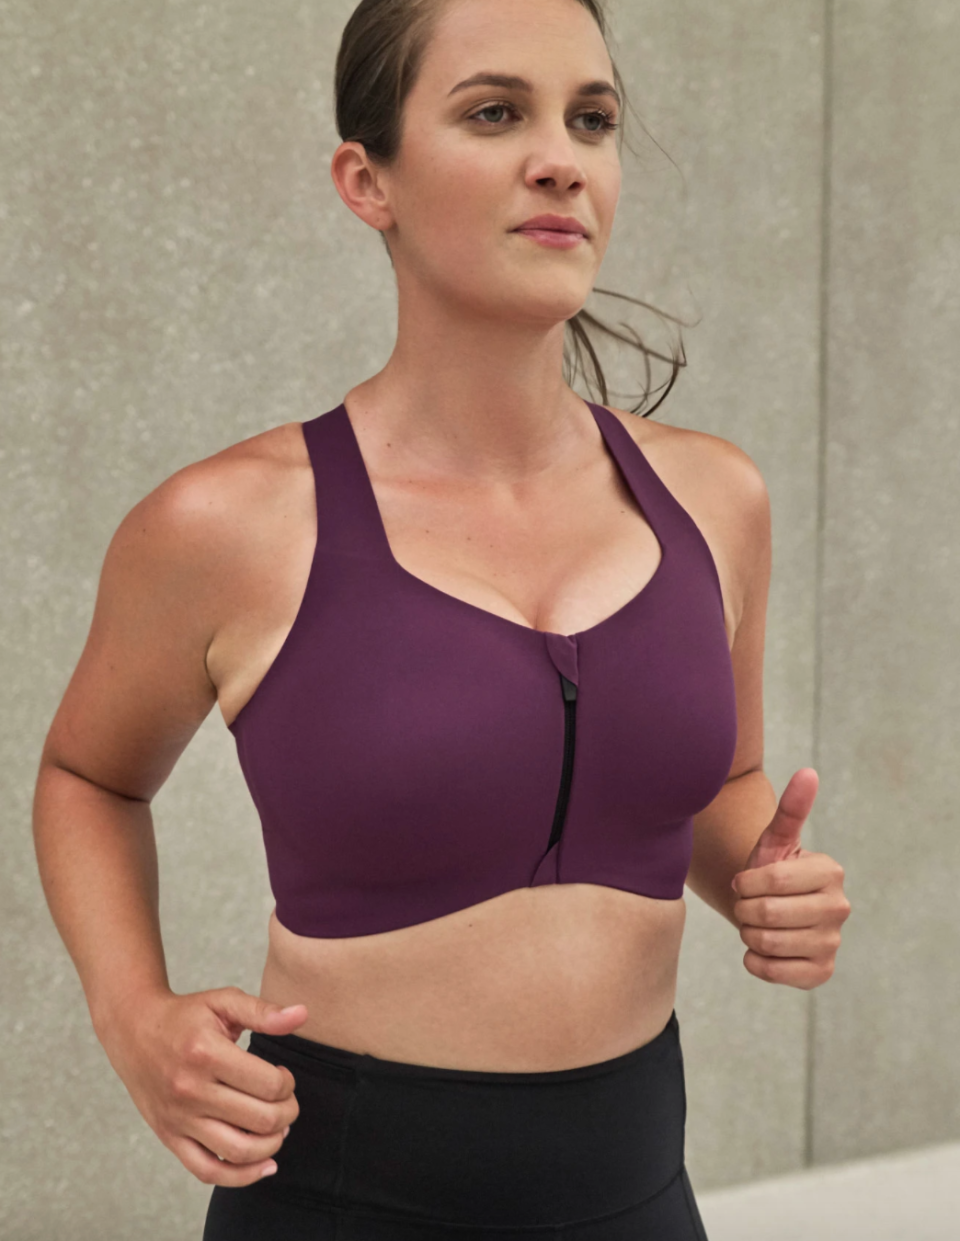 The Catalyst Front Zip Sports Bra provides tons of support during high impact workouts.